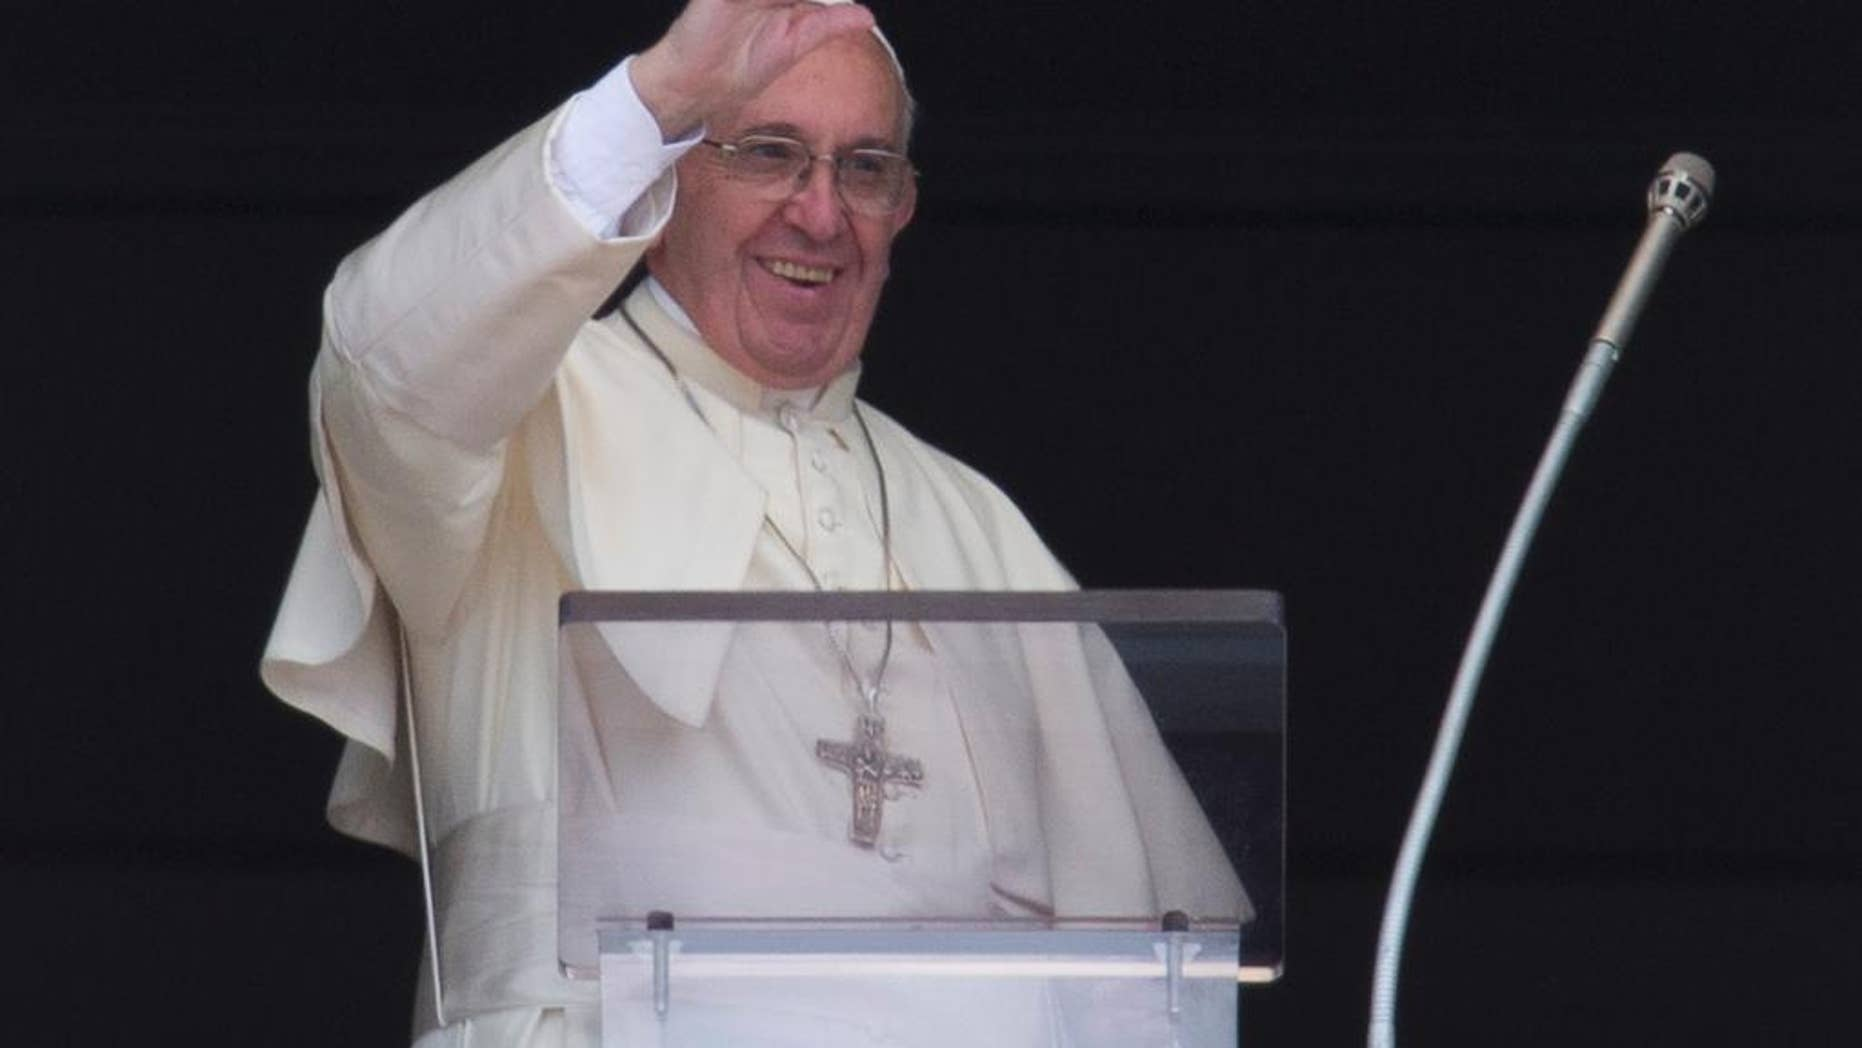 Pope Francis waves during the Regina Coeli prayer from his studio's window overlooking St. Peter's Square, at the Vatican, Sunday, May 1,  2016. (AP Photo/Alessandra Tarantino)